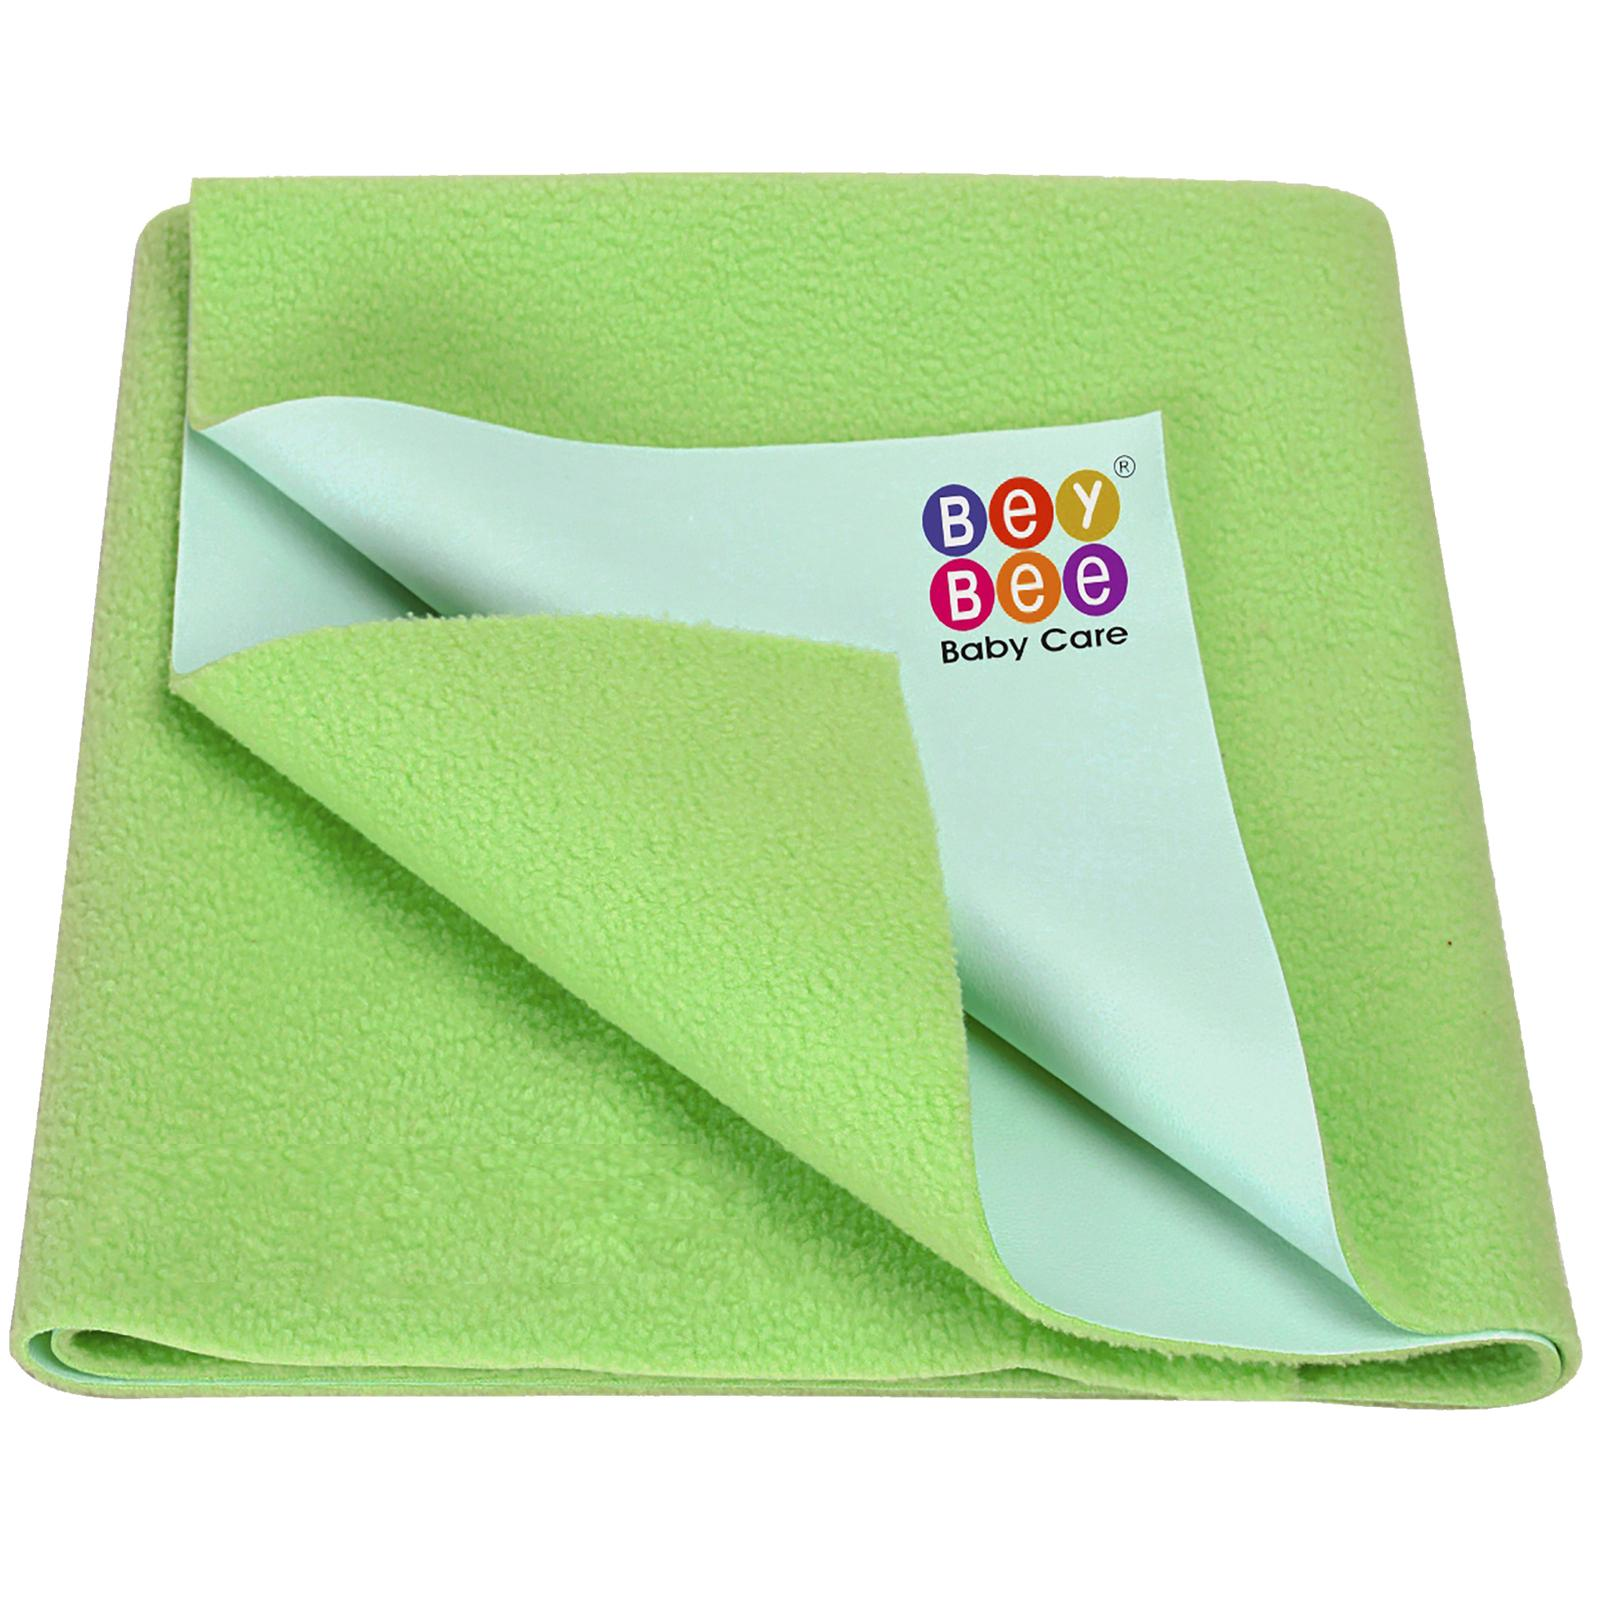 BeyBee Premium Quick Dry Mattress Protector Baby Cot Sheet (X-Large, Light Green)